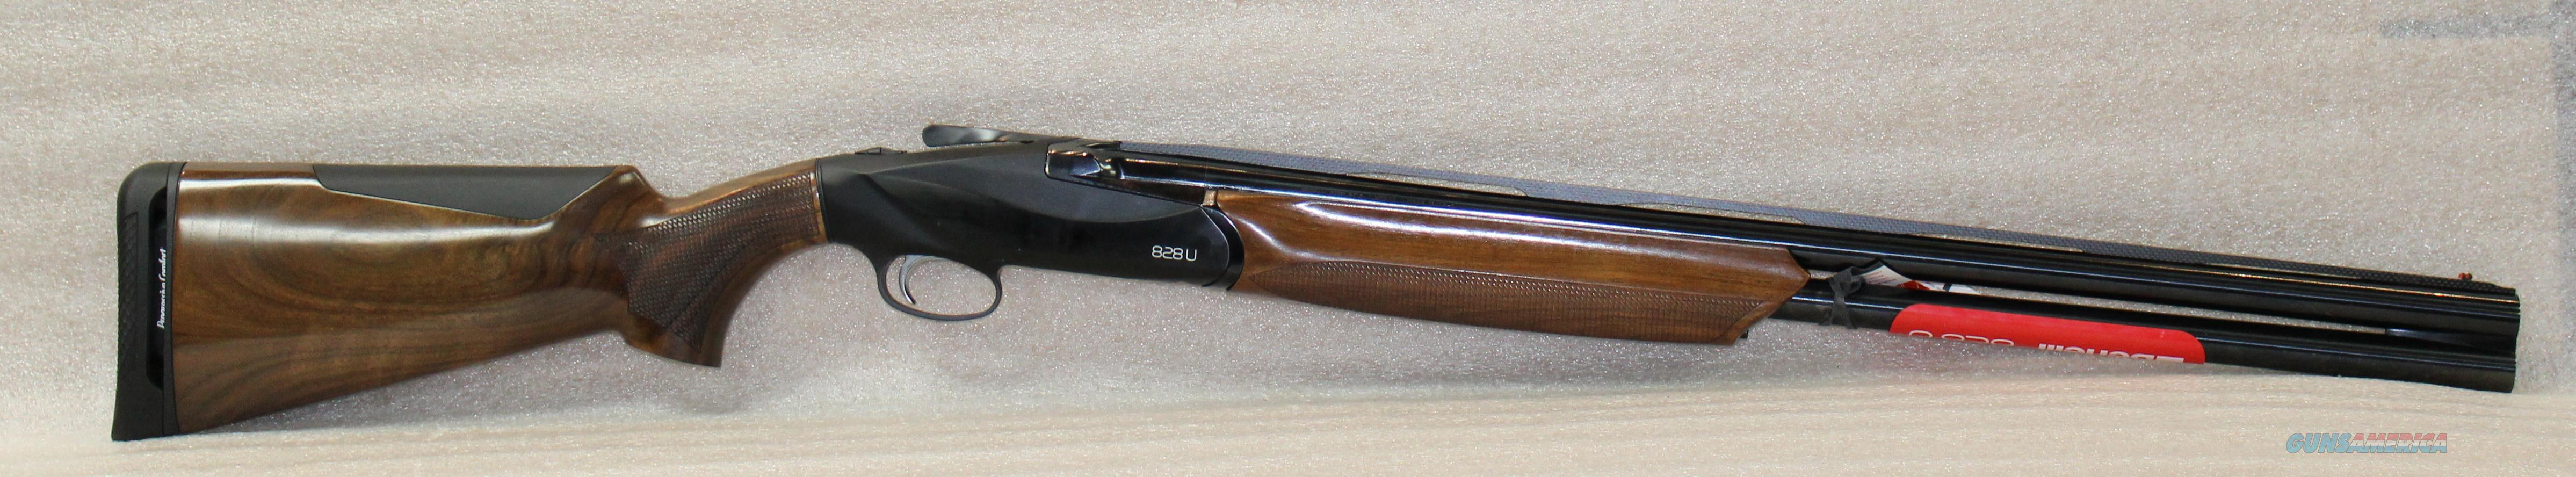 BENELLI 828U FIELD 12 GAUGE 26 INCH BLACK NEW IN BOX  Guns > Shotguns > Benelli Shotguns > Sporting